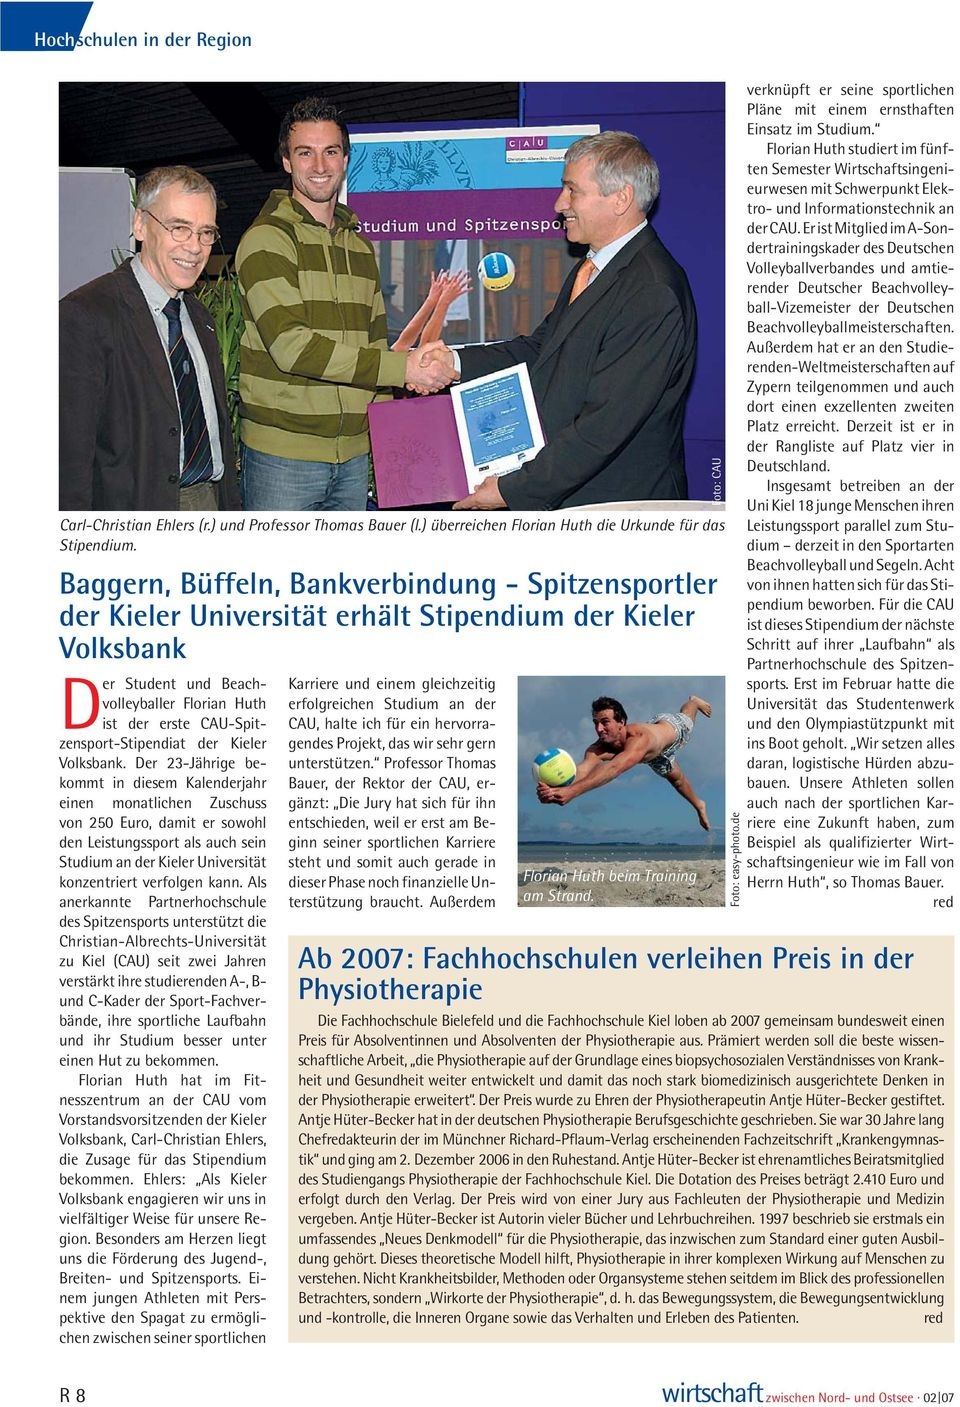 CAU-Spitzensport-Stipendiat der Kieler Volksbank.